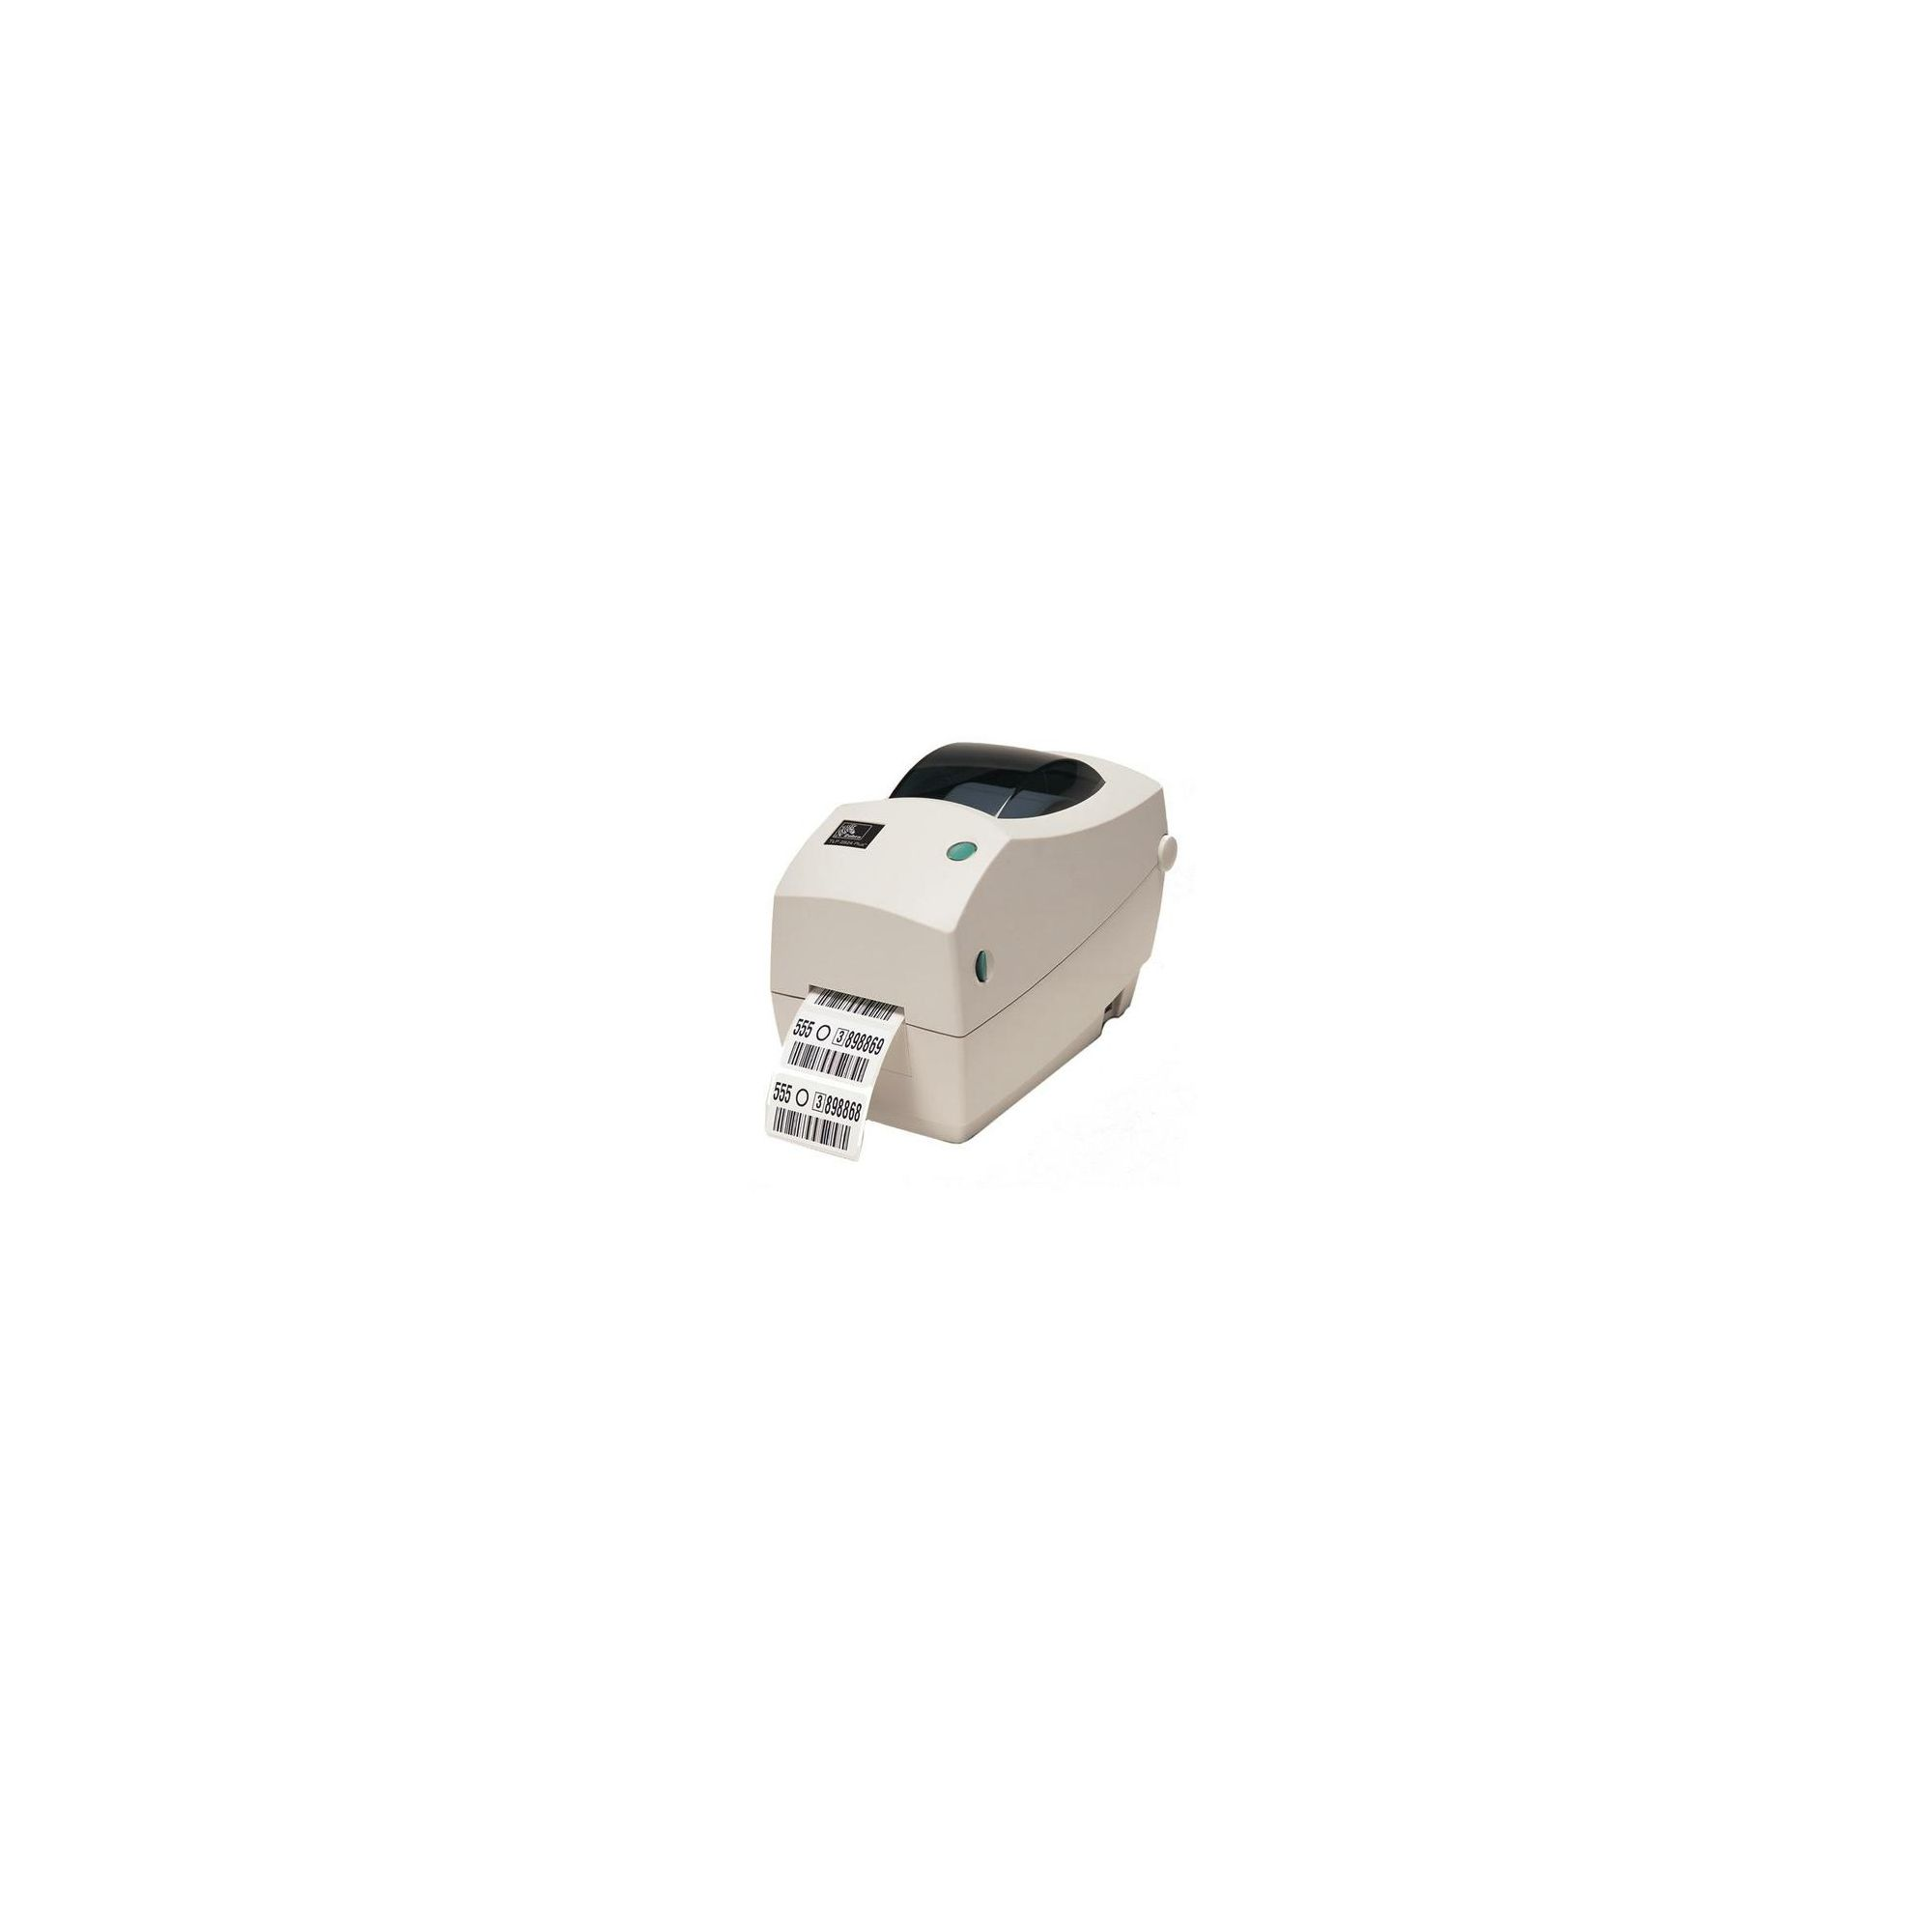 Zebra TLP 2824-Z Desktop Thermal Printer 203 dpi / 8 dot, 56mm Print Width, 102mm Print Speed, 8MB Ram, 4MB Flash, ZPL, Parallel + No Options at Tesco Direct